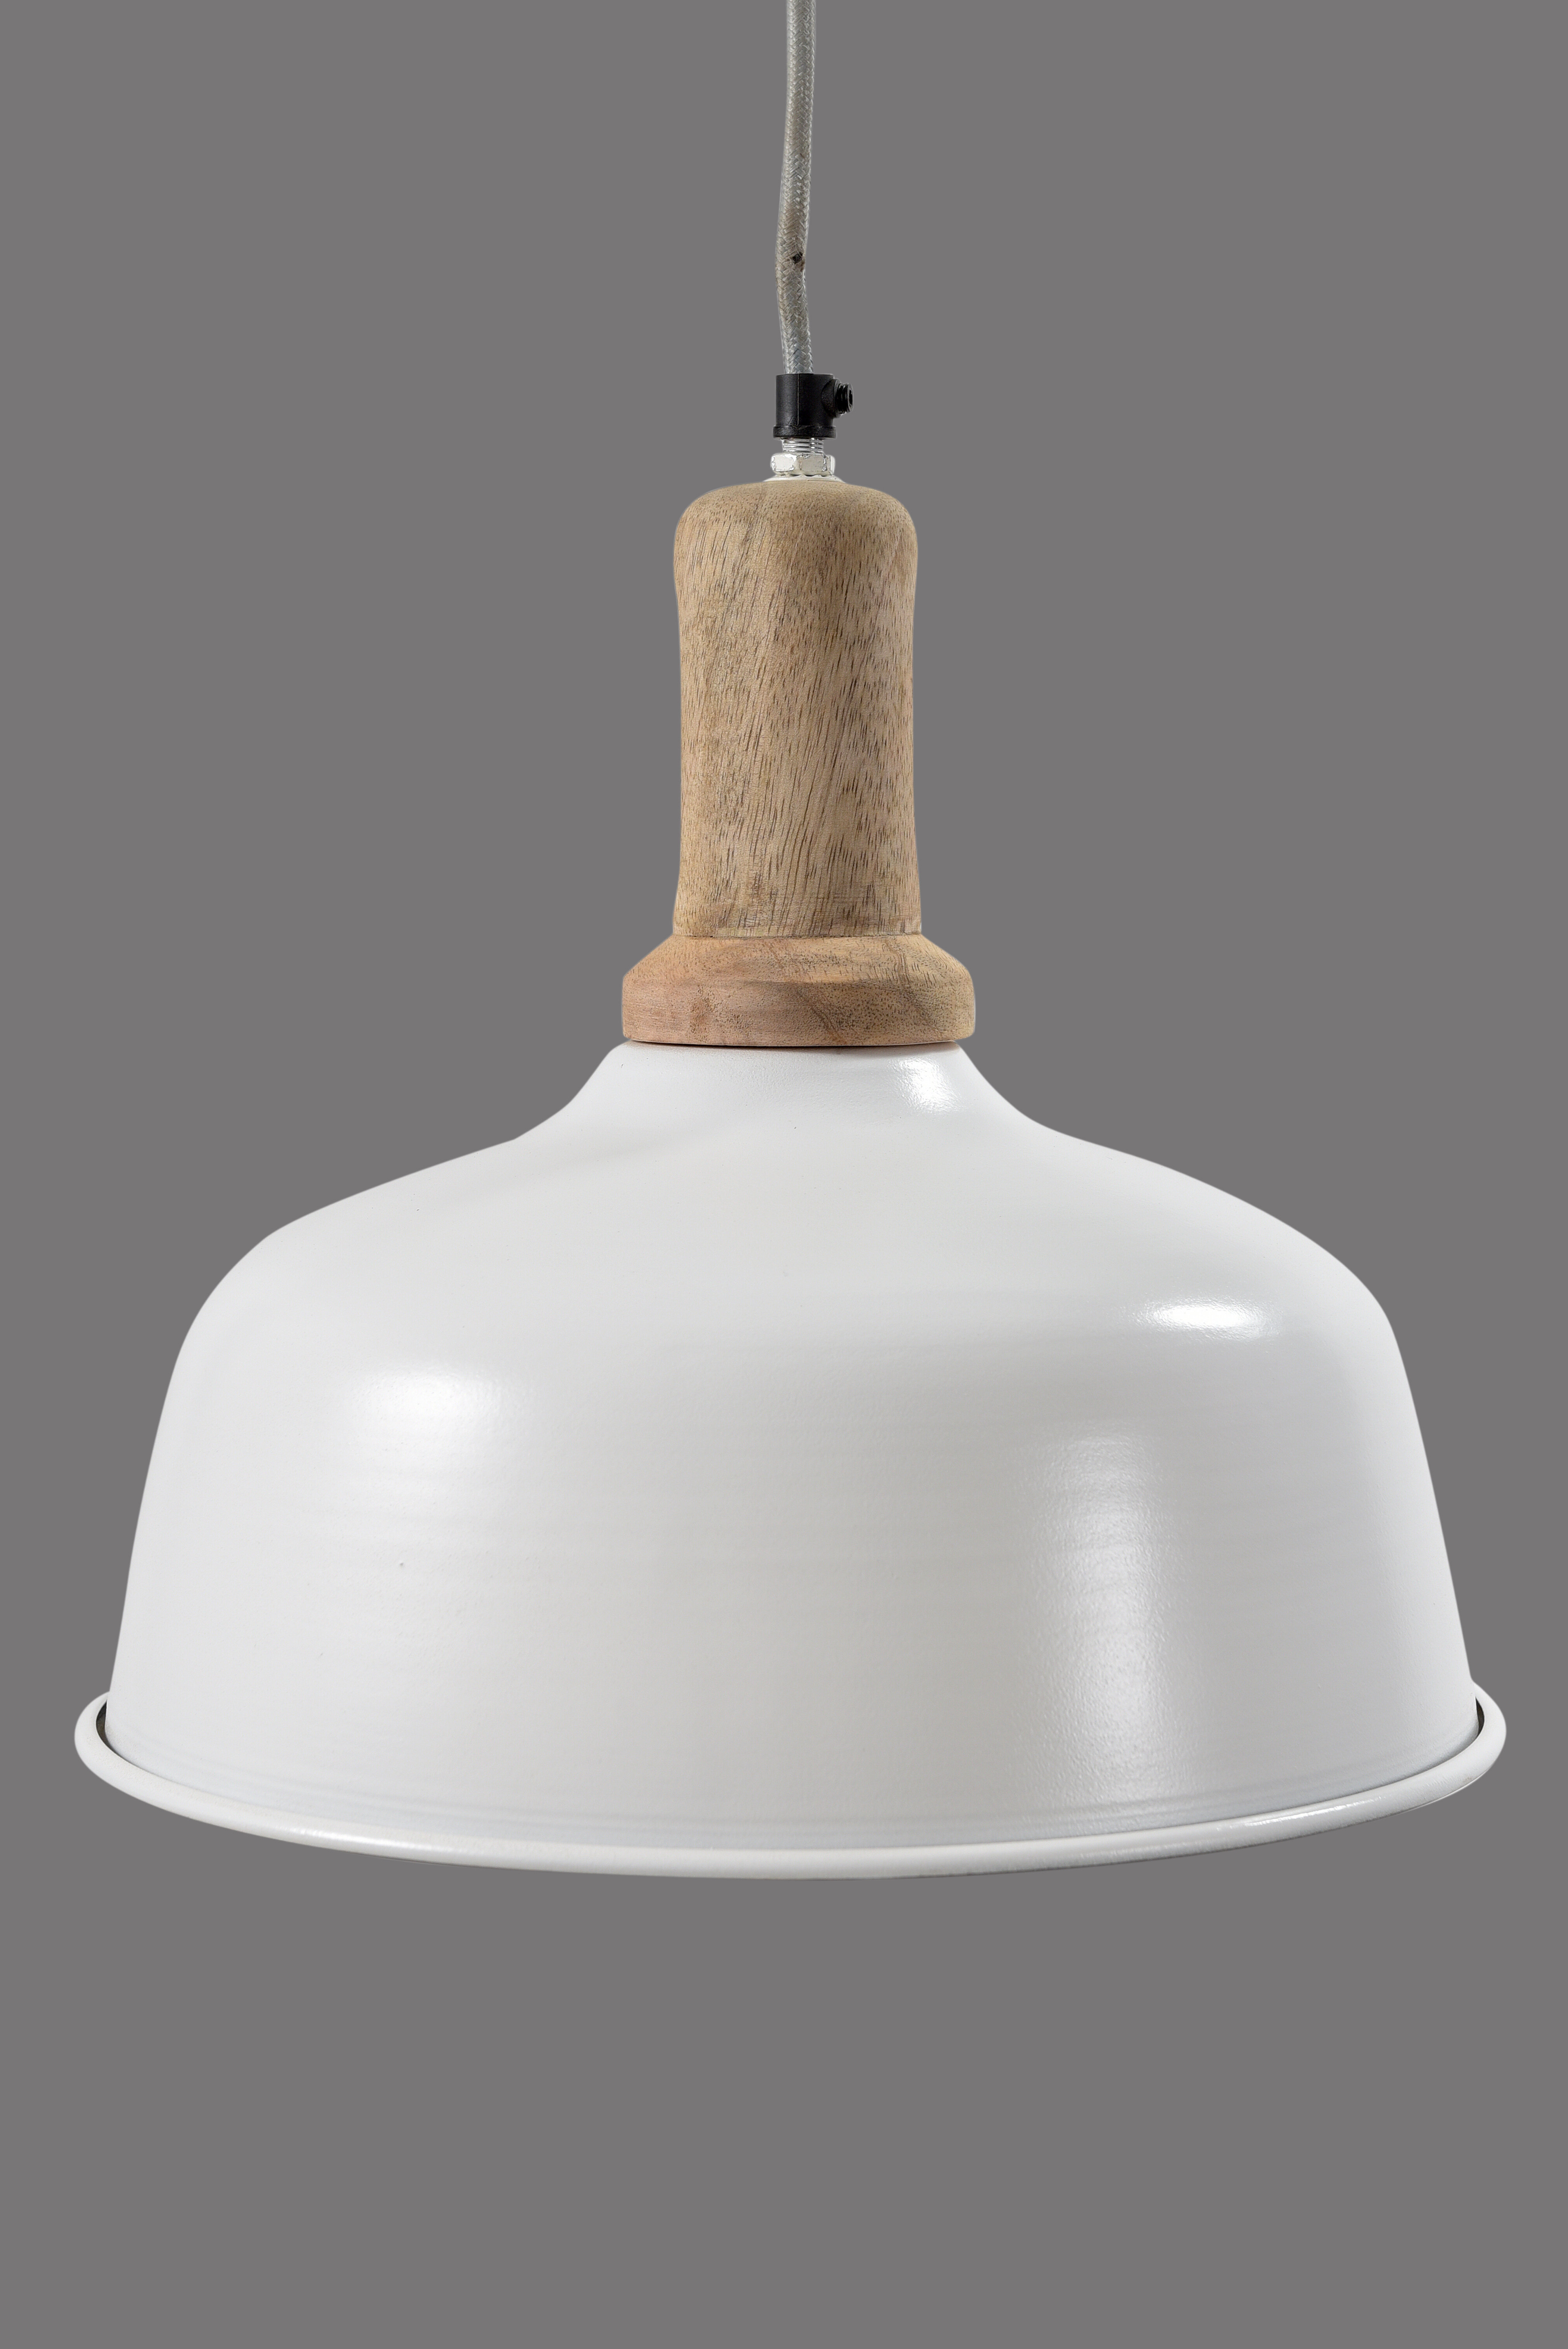 Best And Newest 1 Light Single Dome Pendants For Glenam 1 Light Single Dome Pendant (View 7 of 20)